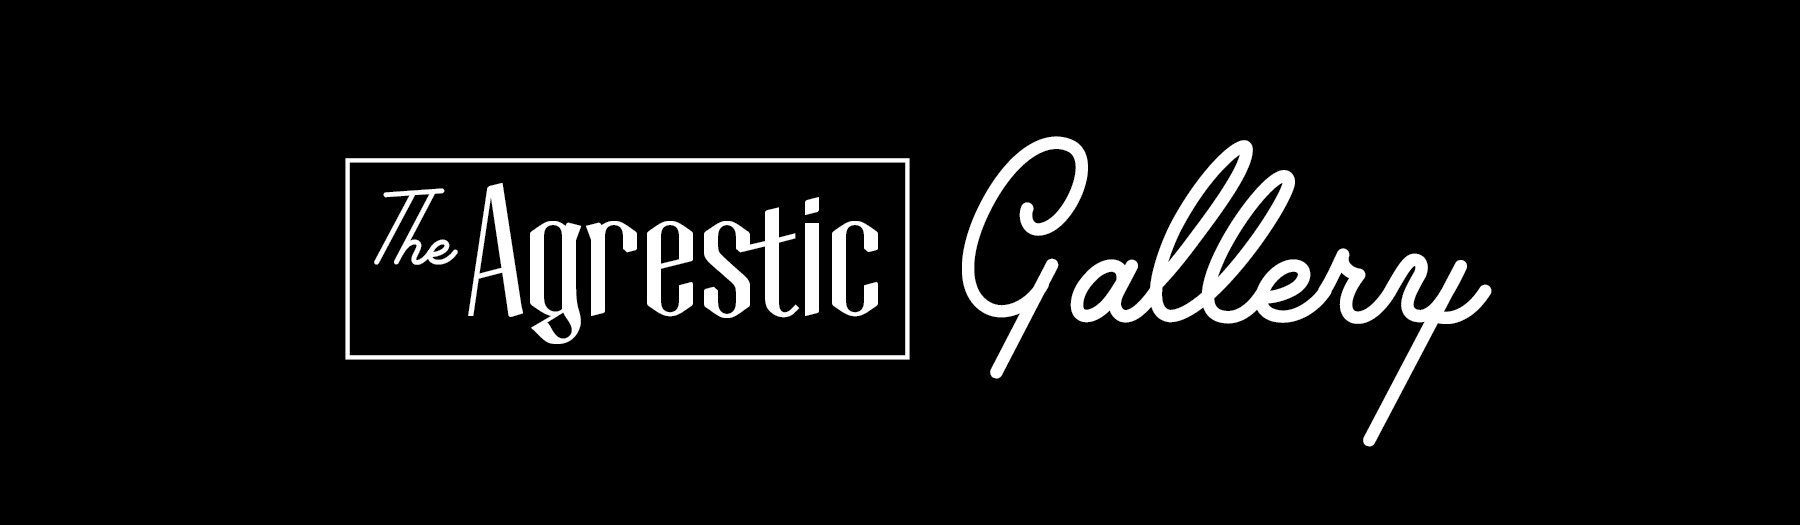 The Agrestic Gallery